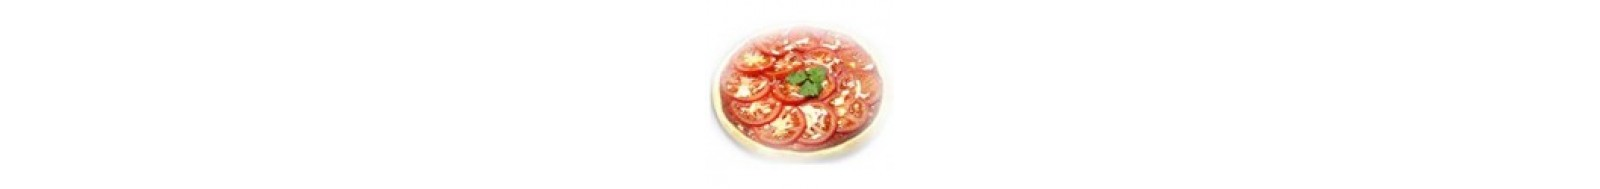 Pizza Tomate y Queso